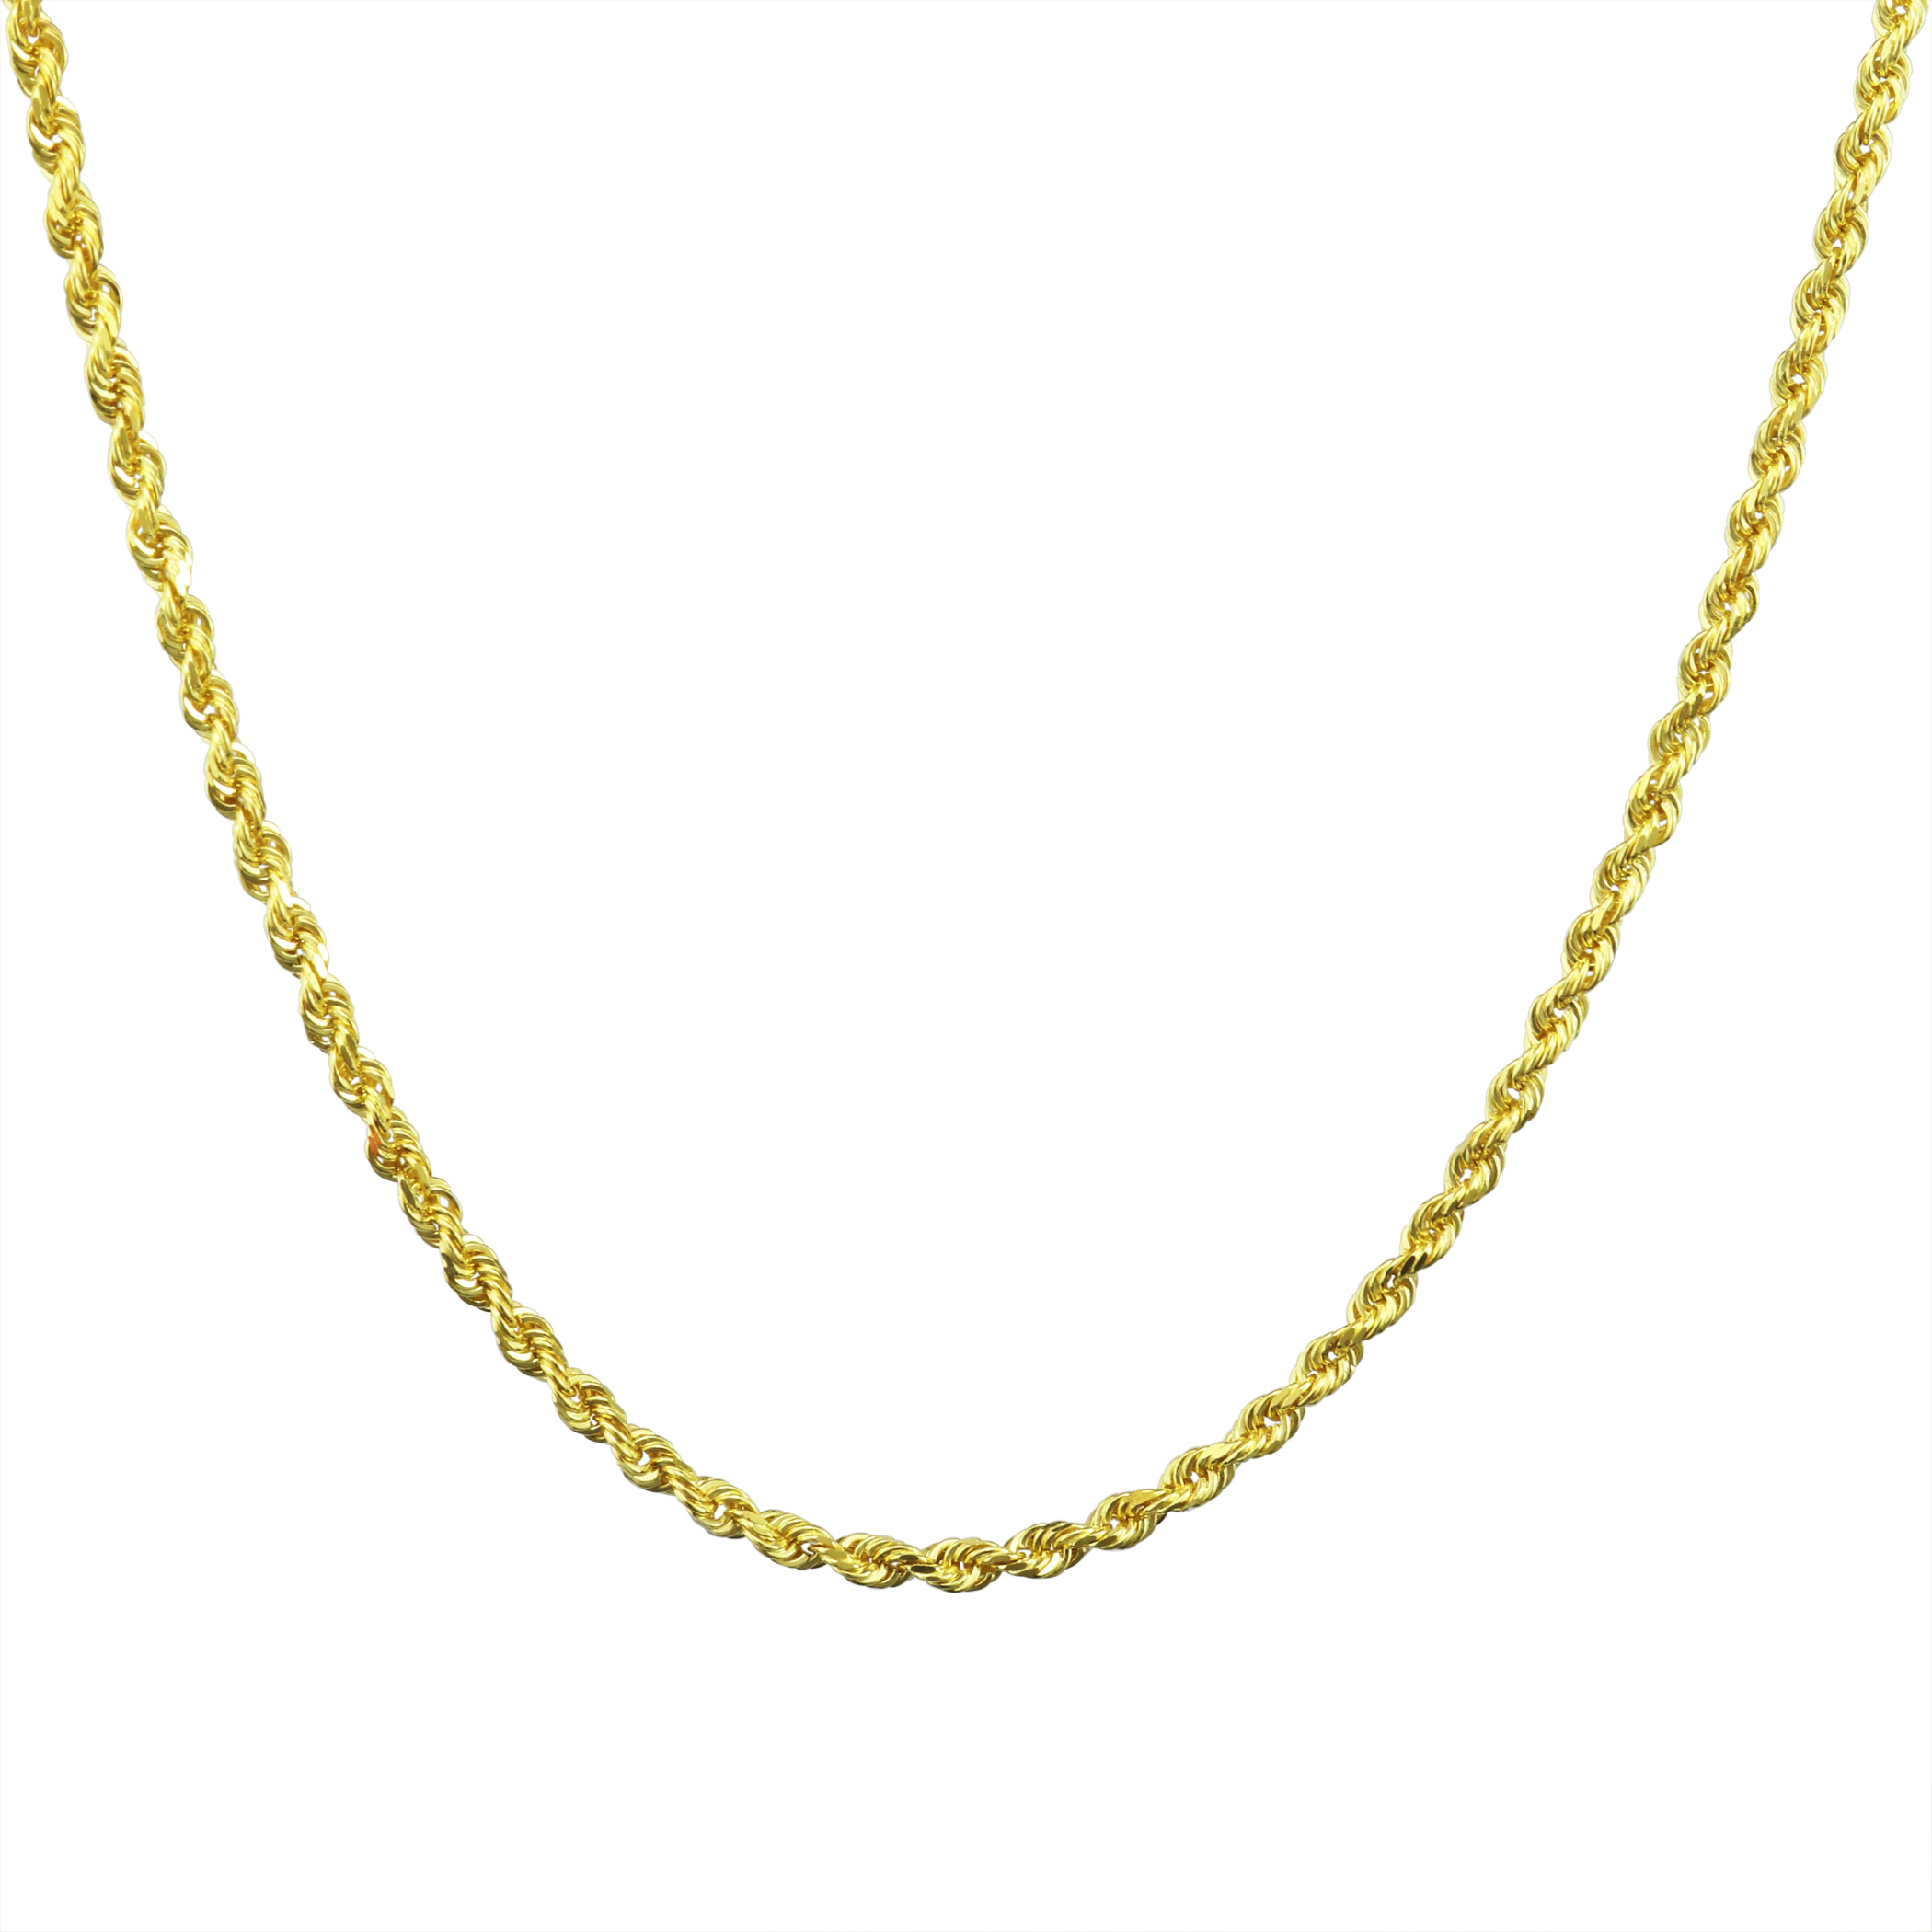 Solid-14K-Yellow-Gold-2-5mm-Mens-Women-Diamond-Cut-Rope-Chain-Necklace-16-034-30-034 thumbnail 21